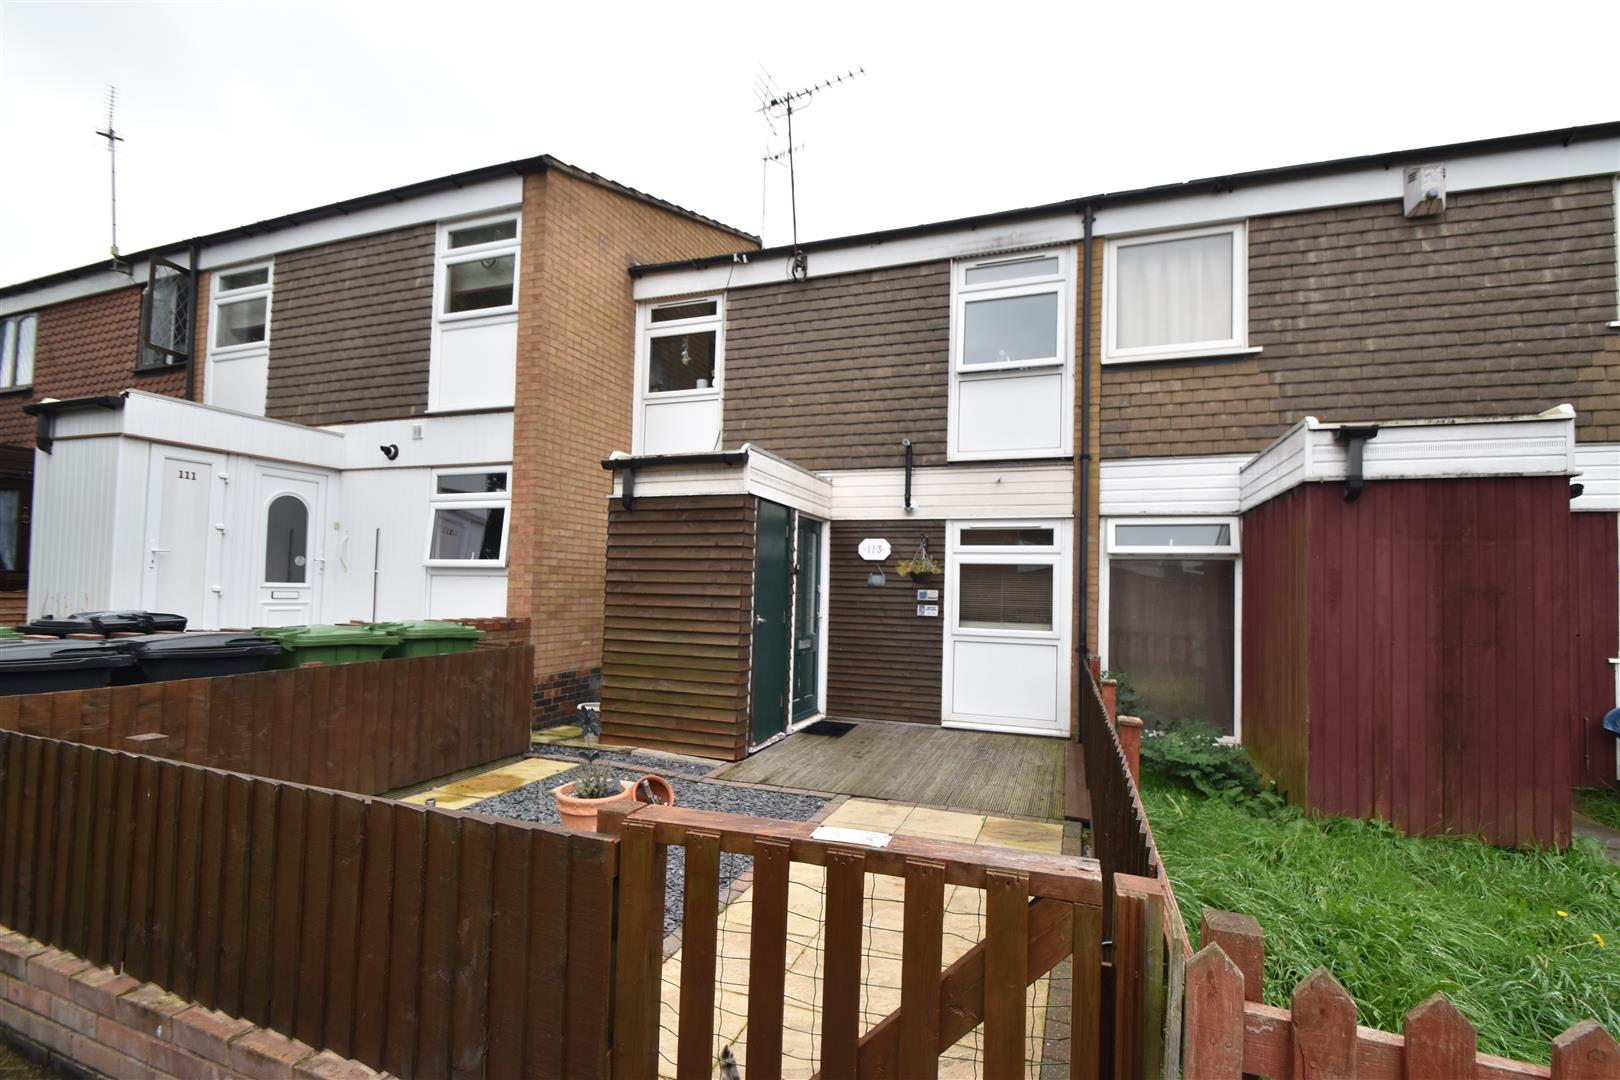 4 Bedrooms Terraced House for sale in Woodmans Rise, Droitwich